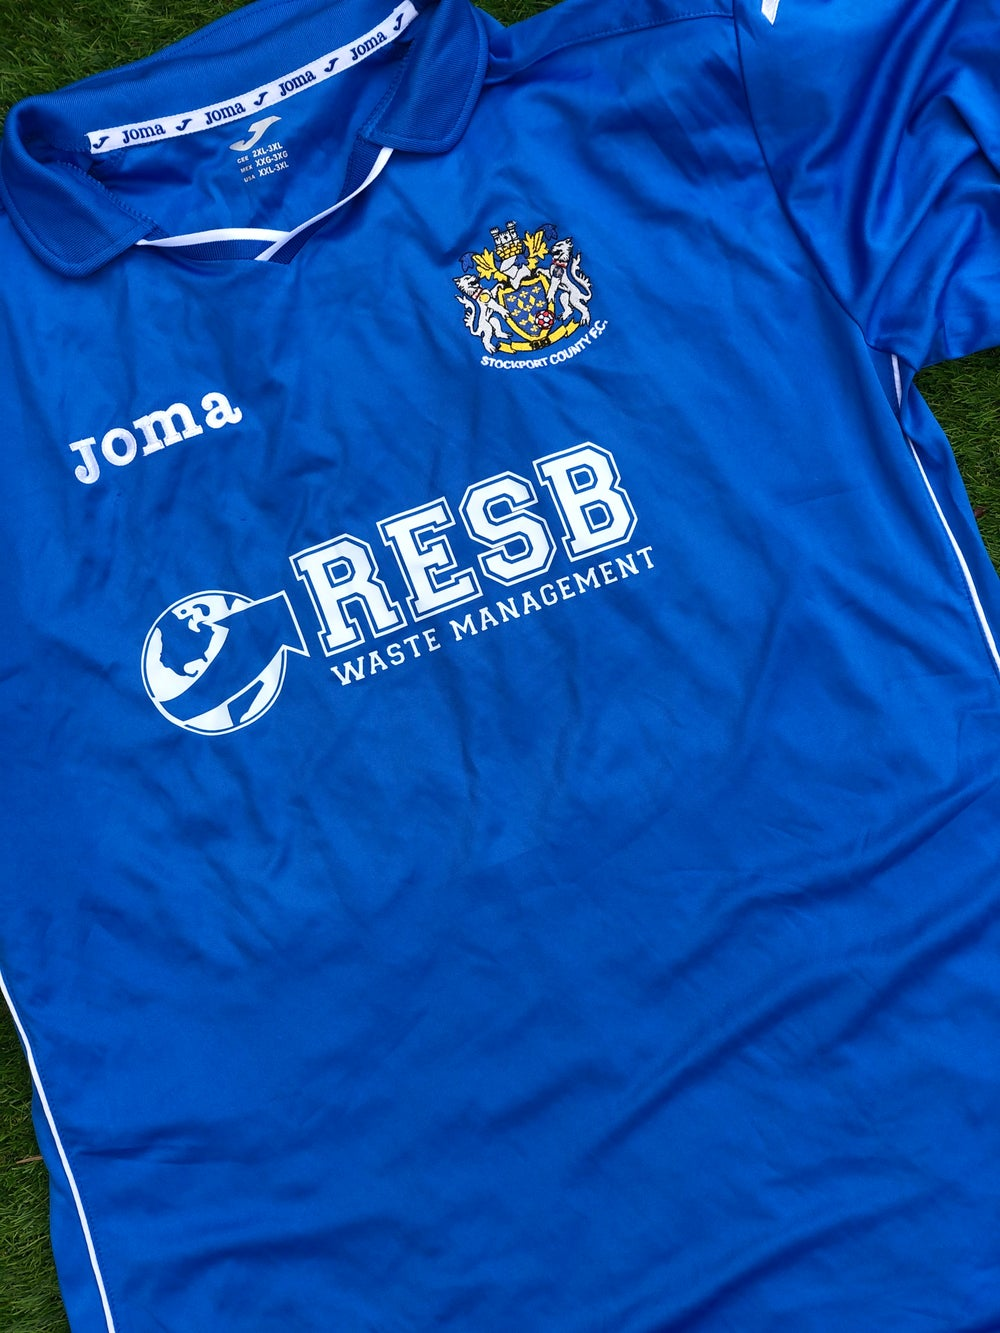 Image of Replica 2014/15 Joma Home Shirt